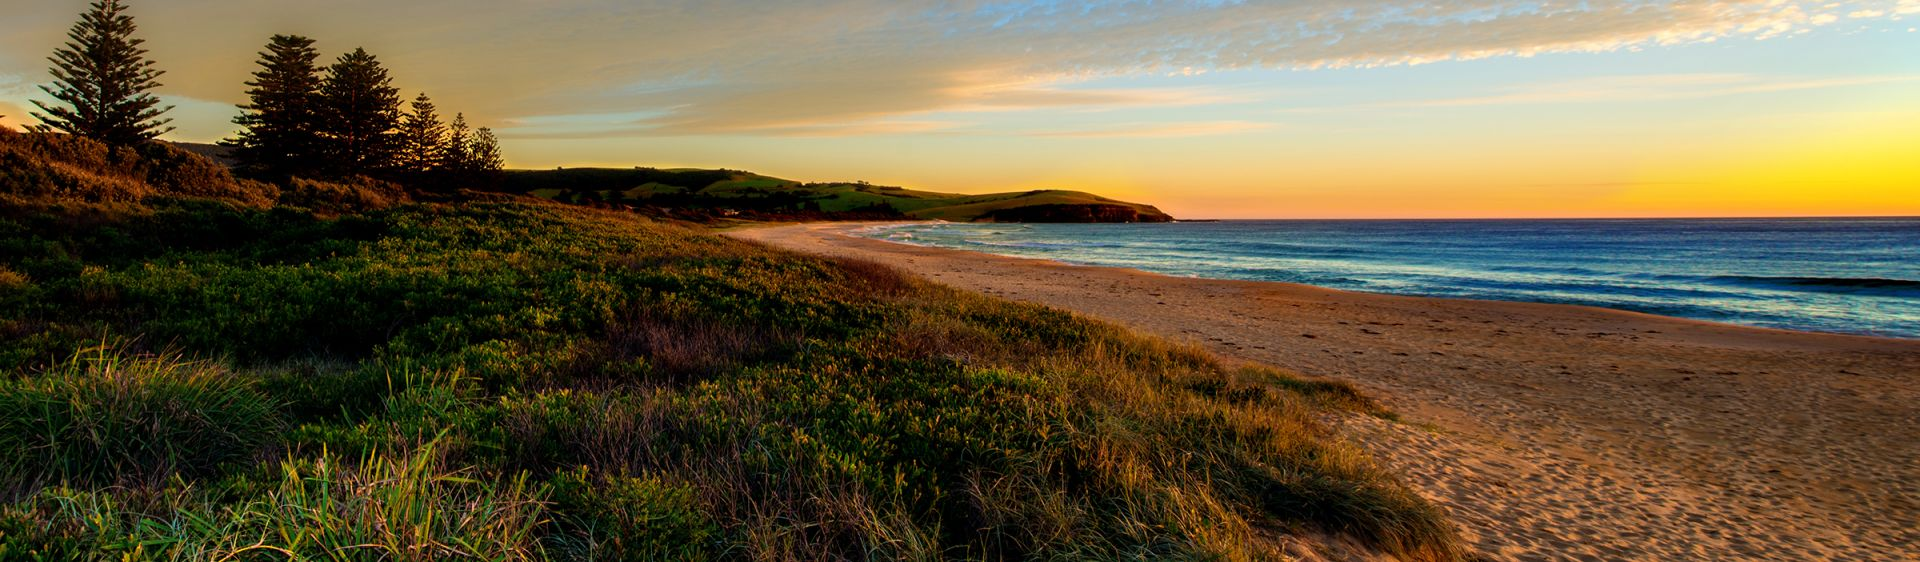 Werri Beach - Gerringong - Kiama Area